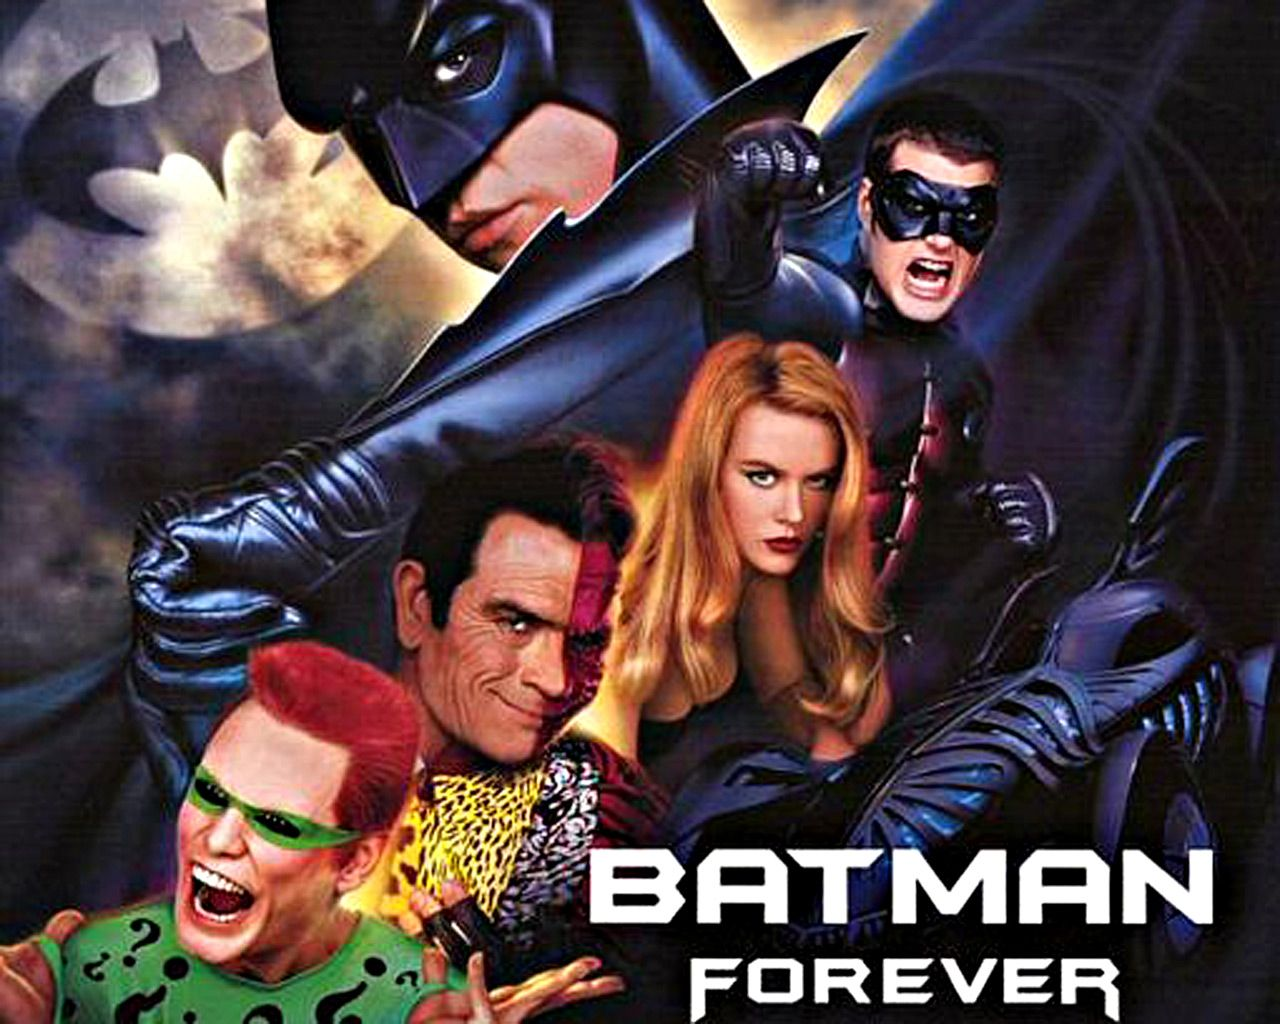 Batman Forever Characters Collage Wallpaper 1280x1024